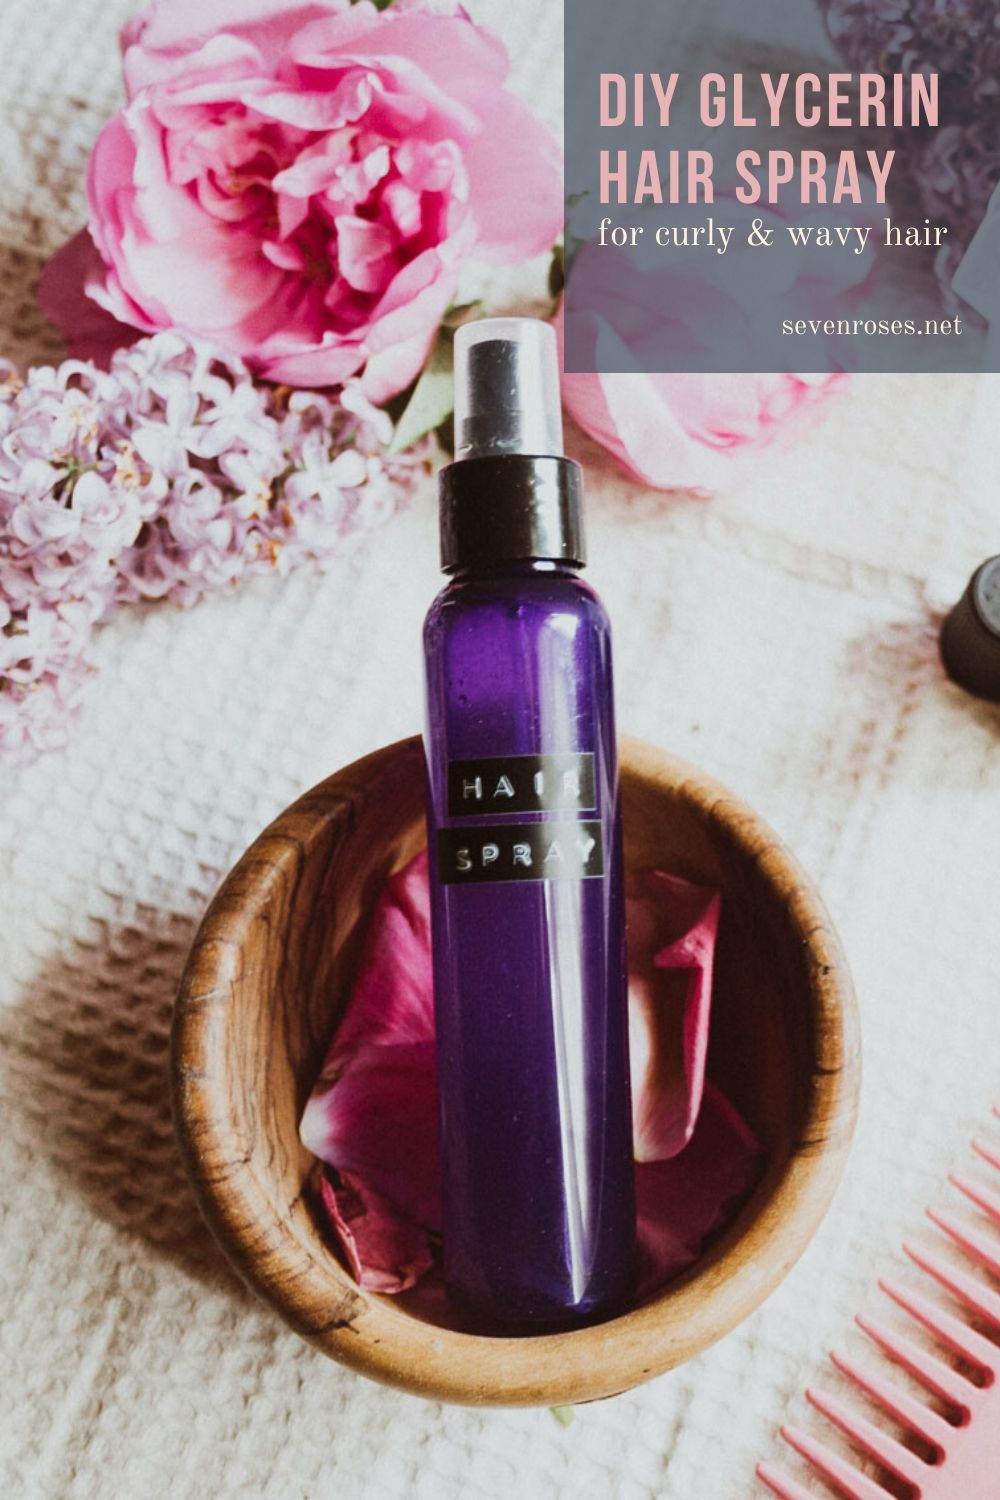 DIY Glycerin hair spray with Aloe Vera and Rose Water for curly and wavy hair